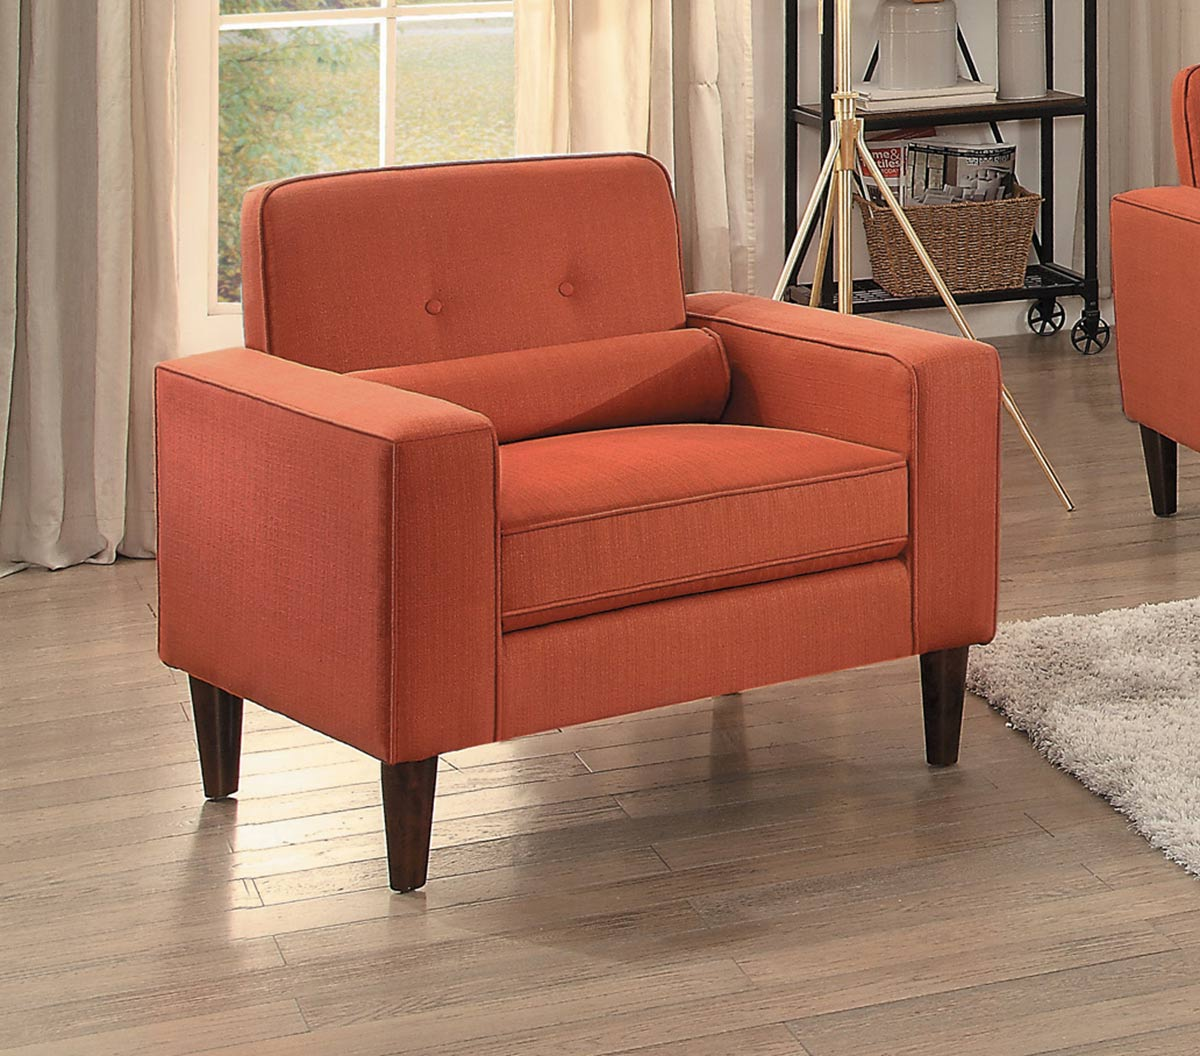 Homelegance Corso Chair - Orange